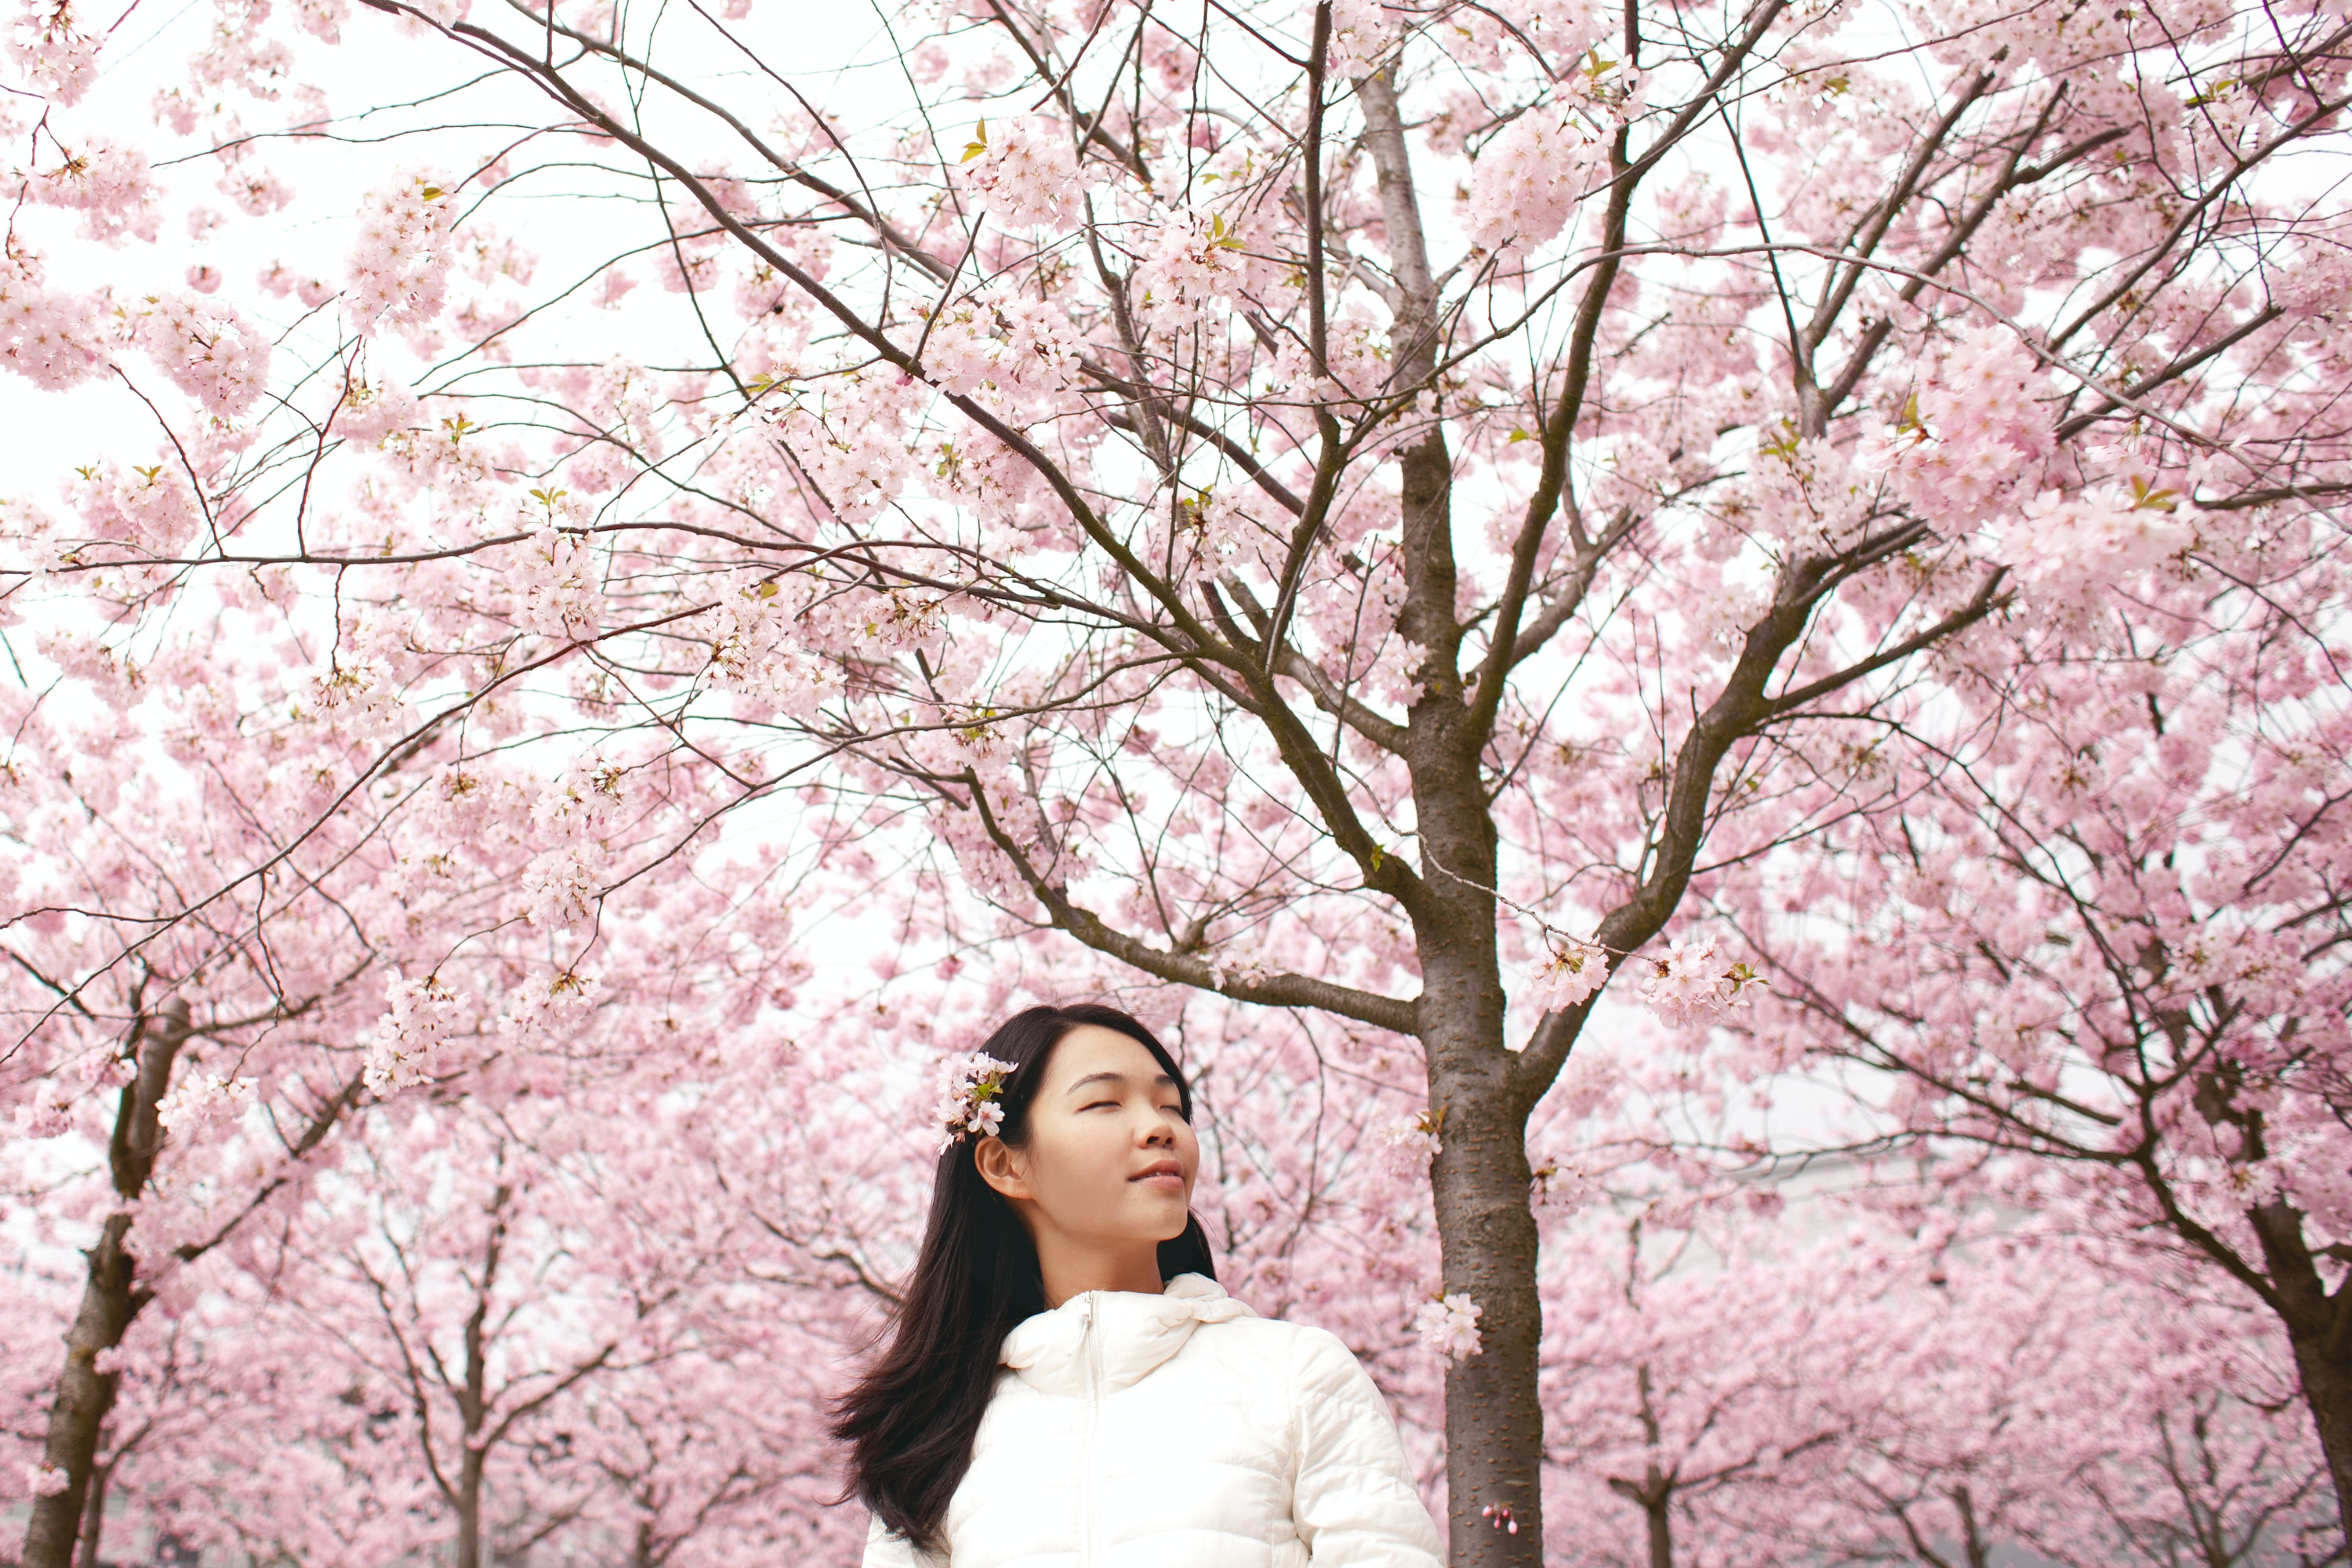 Woman with closed eyes and flowers in her hair stands among cherry blossom trees in Cottbus